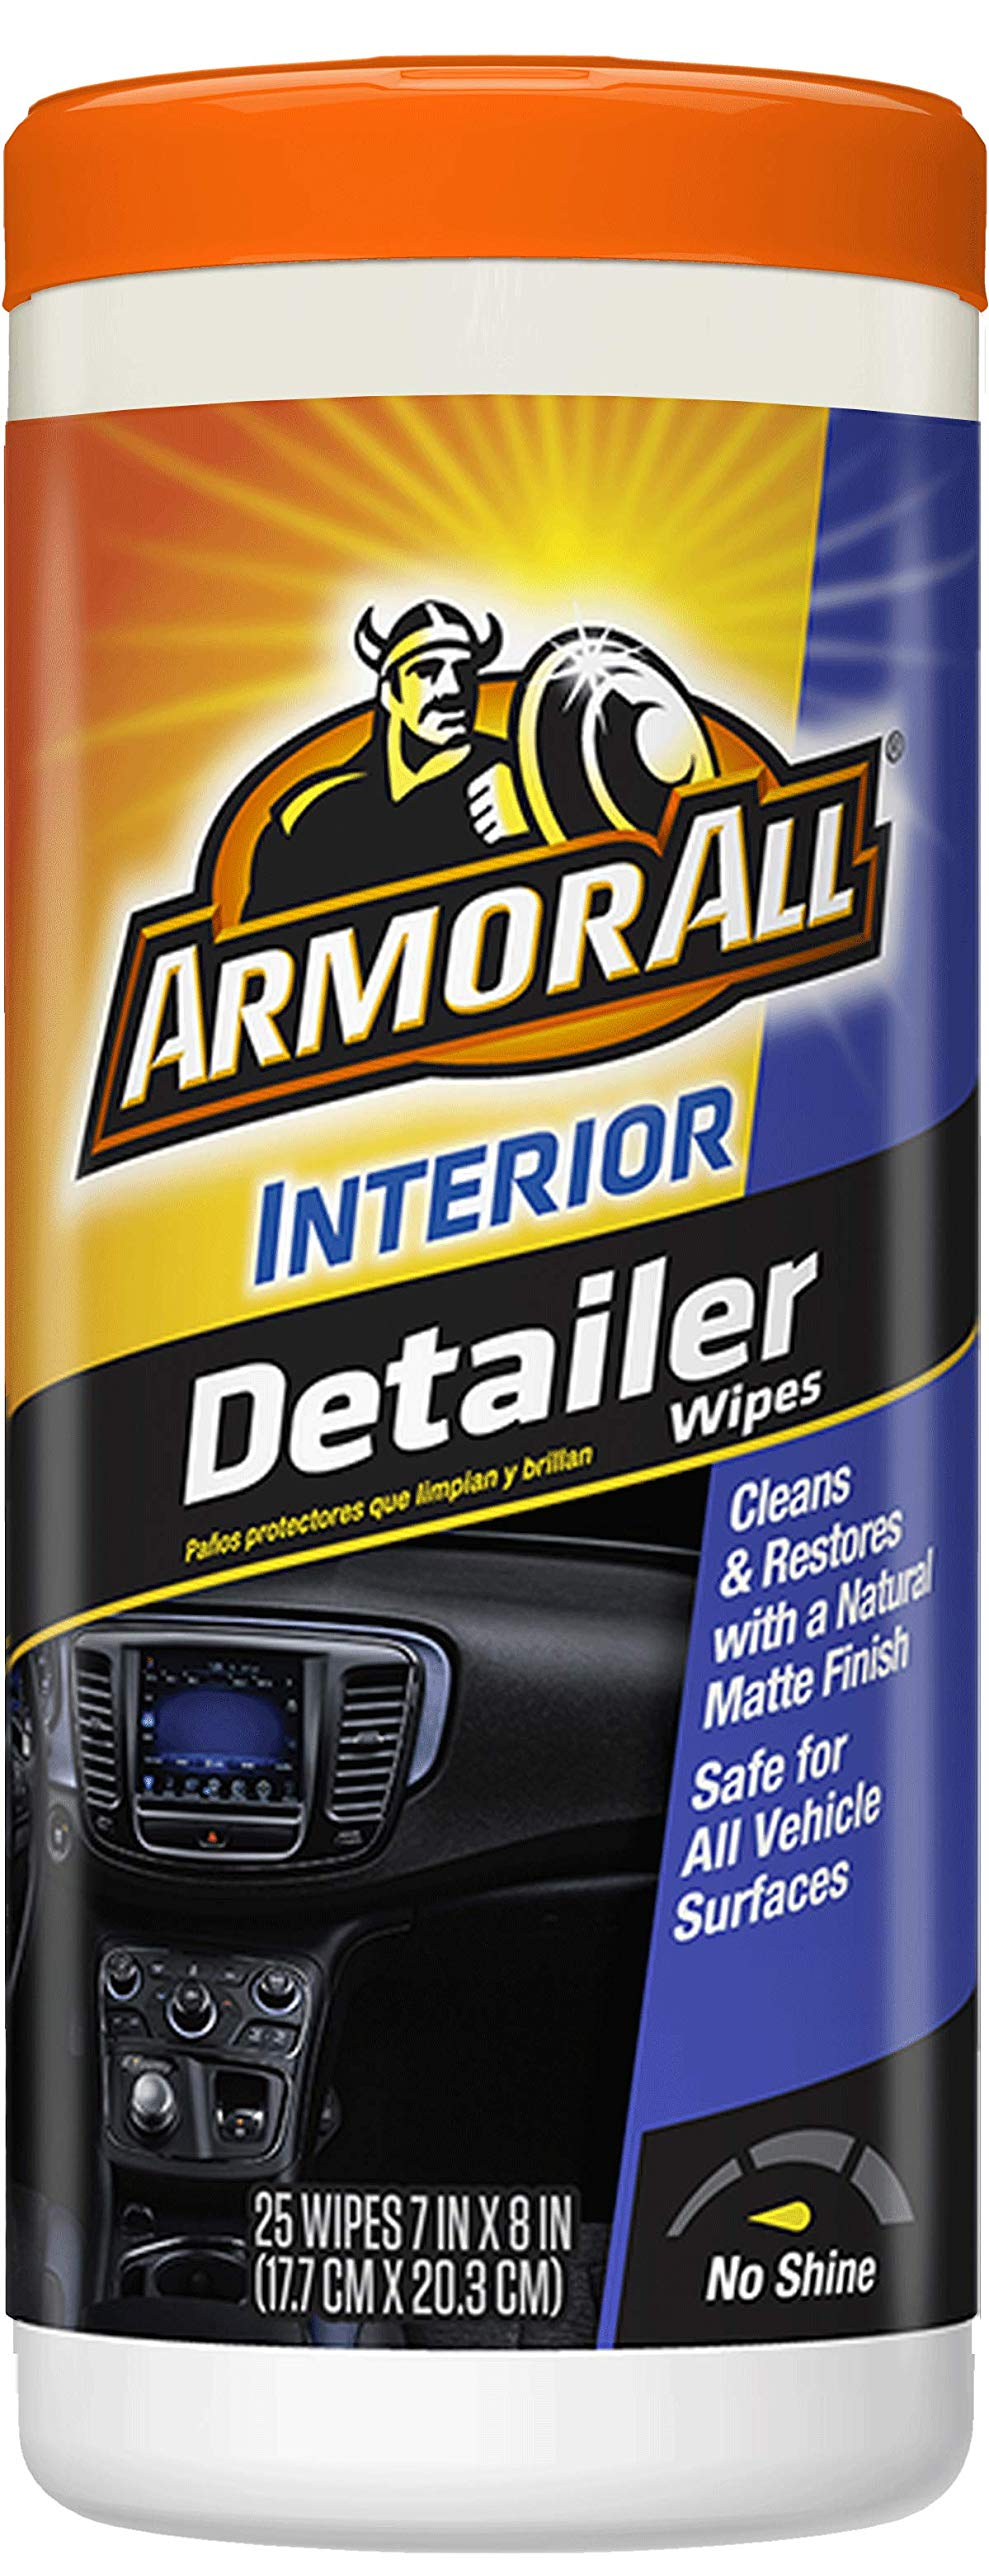 Armor All Car Interior Cleaner Protectant Wipes - Cleaning for Cars & Truck & Motorcycle, Natural Finish, 25 Count (Pack of 6) 78503-6PK